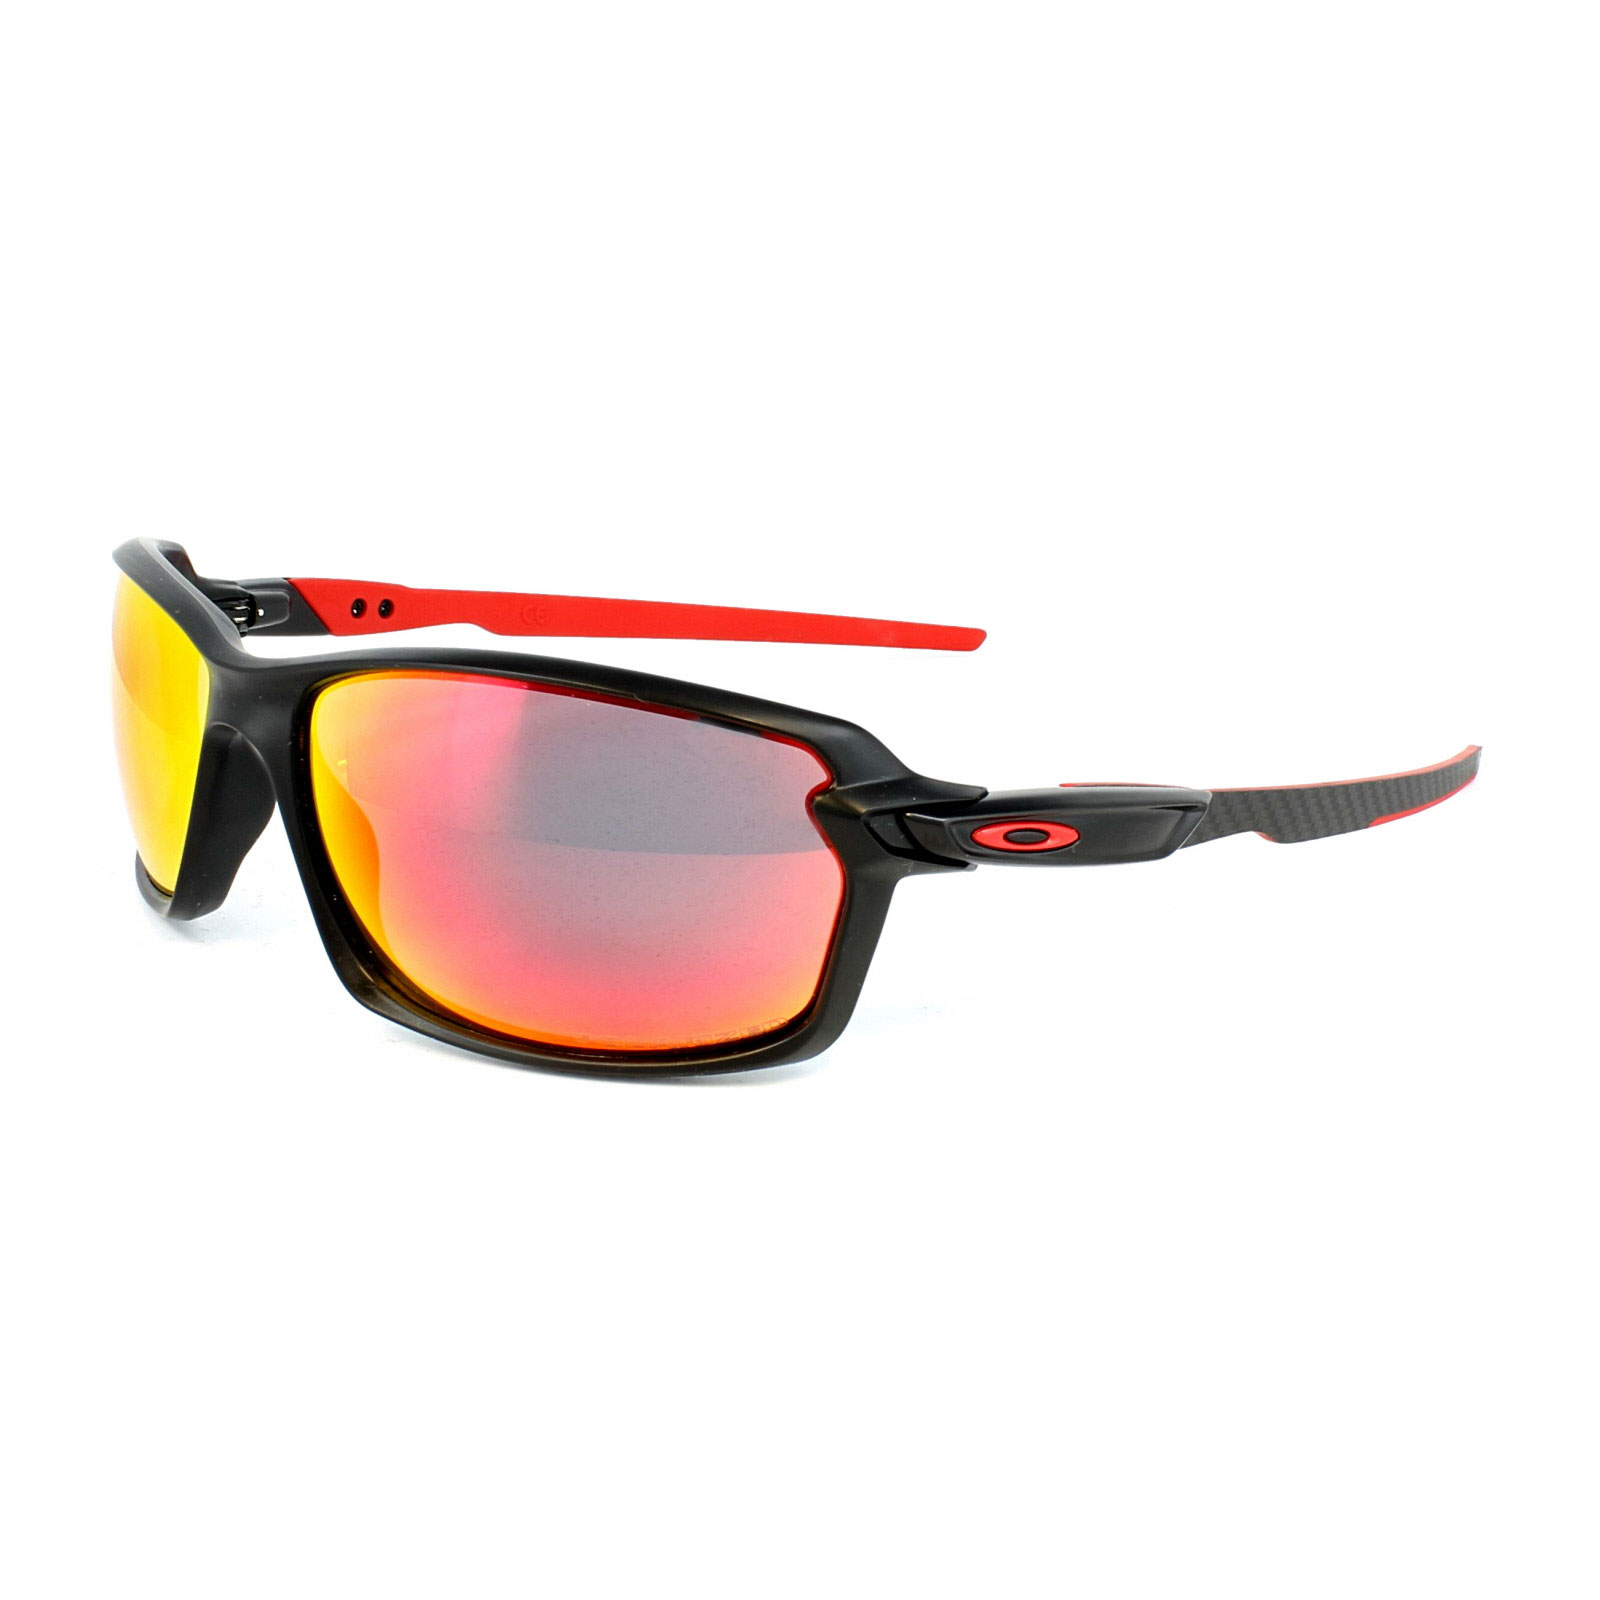 Cheap Oakley Carbon Shift Sunglasses Discounted Sunglasses